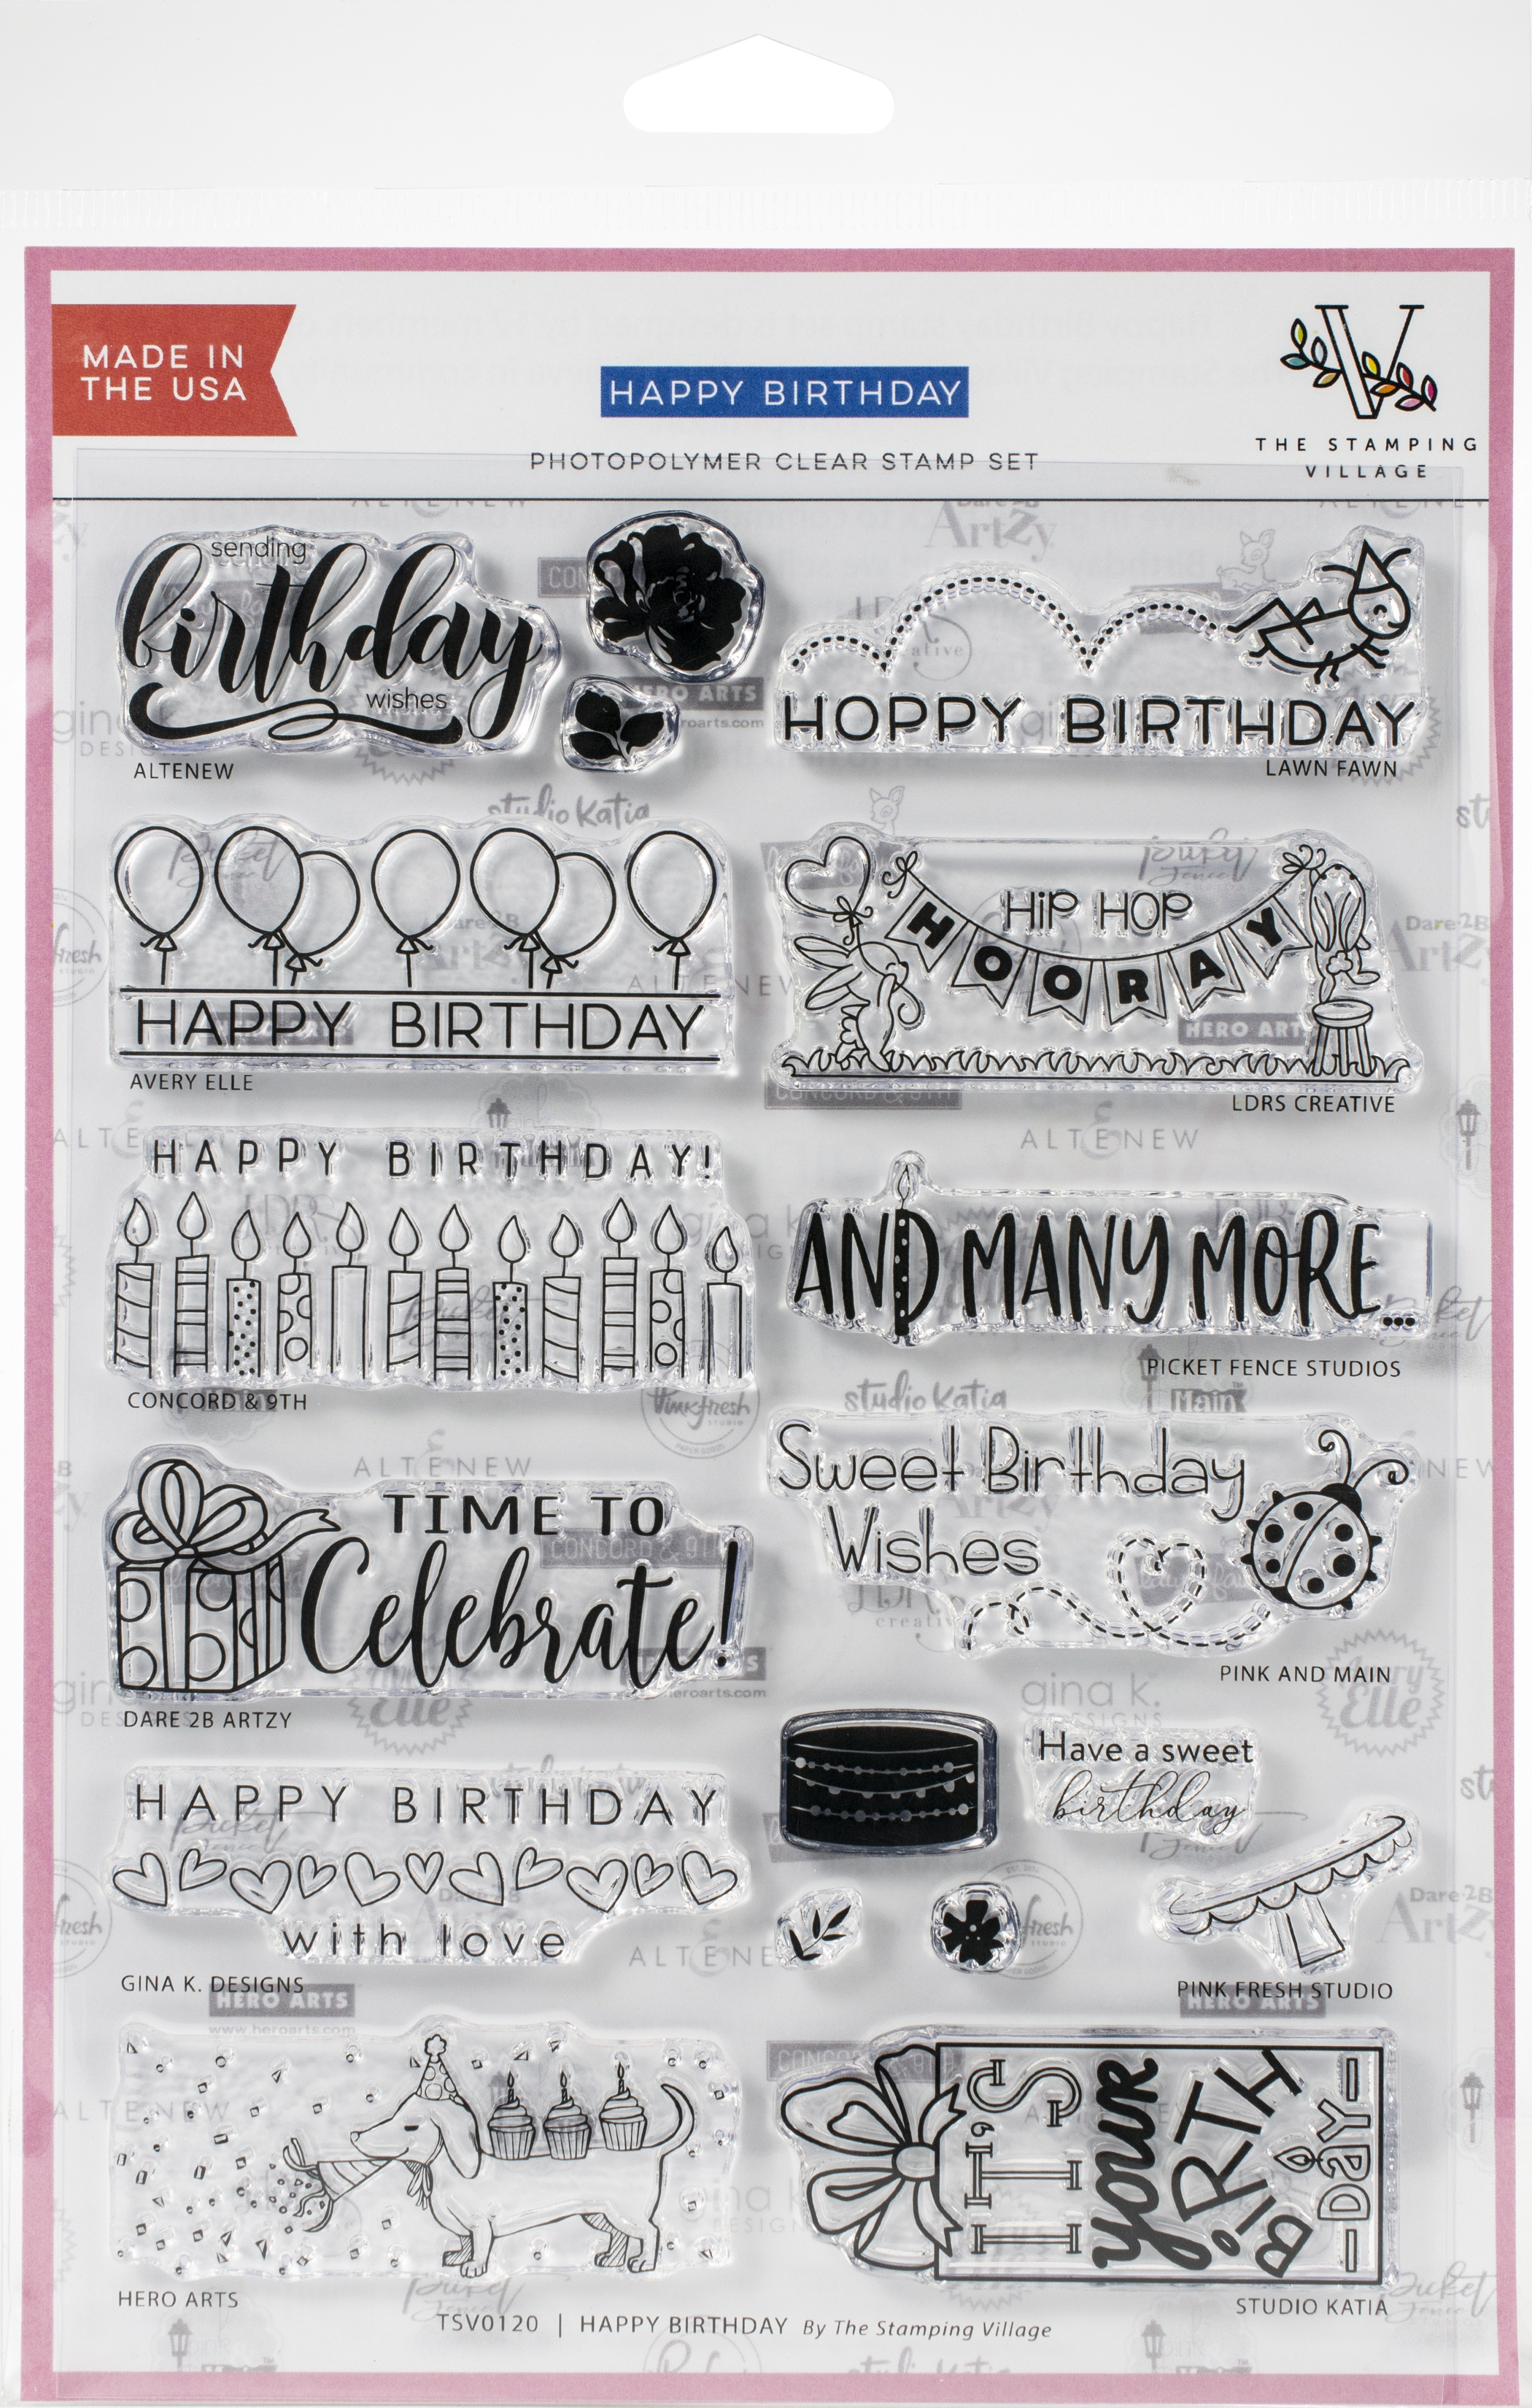 The Stamping Village - Happy Birthday